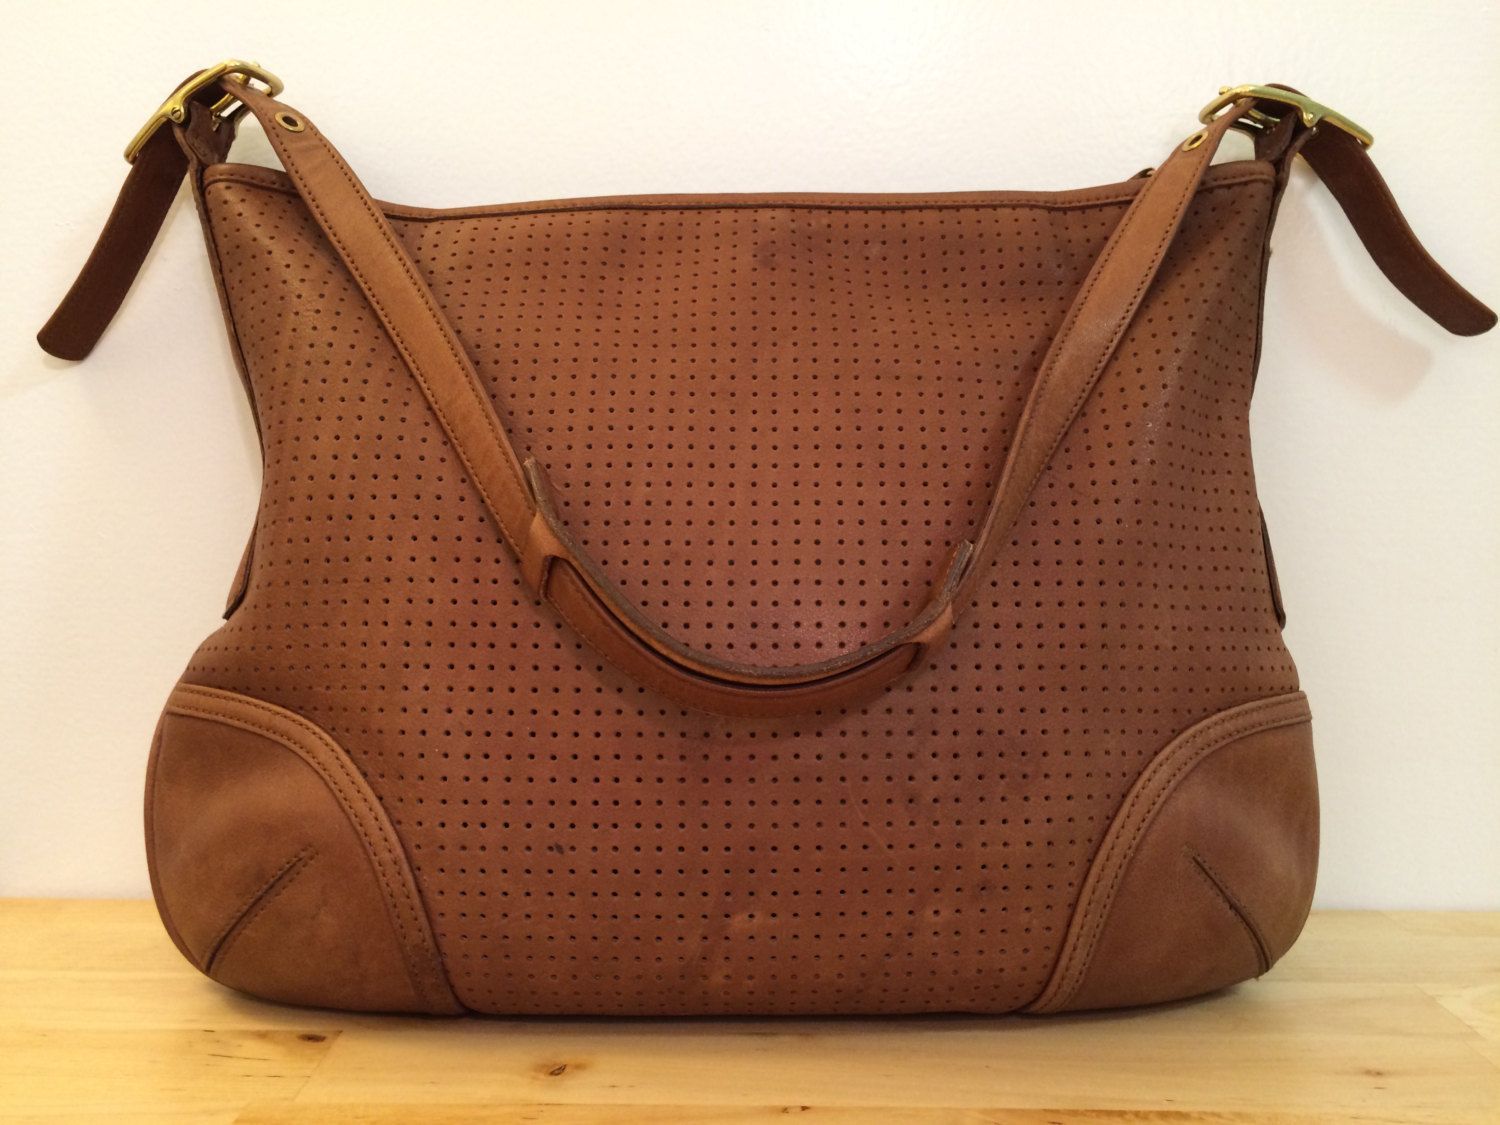 Coach Legacy 9218 Camel Brown Hobo Shoulder Bag by ChrysanthemumVintage on  Etsy. Find this Pin and more on Vintage handbags ... 31001dabb2af1